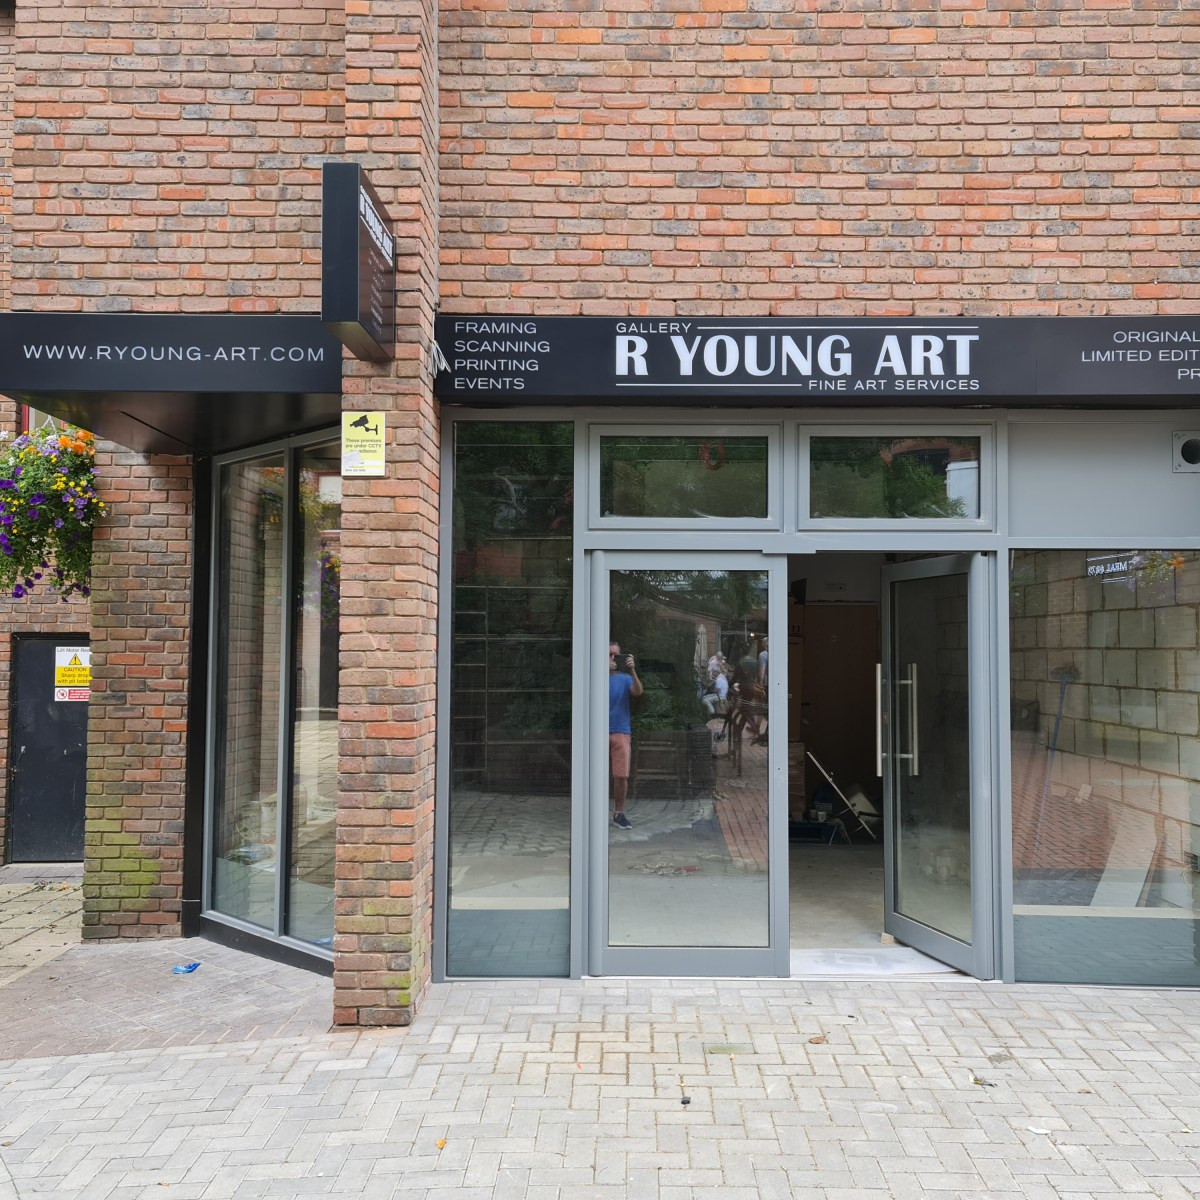 Gallery front